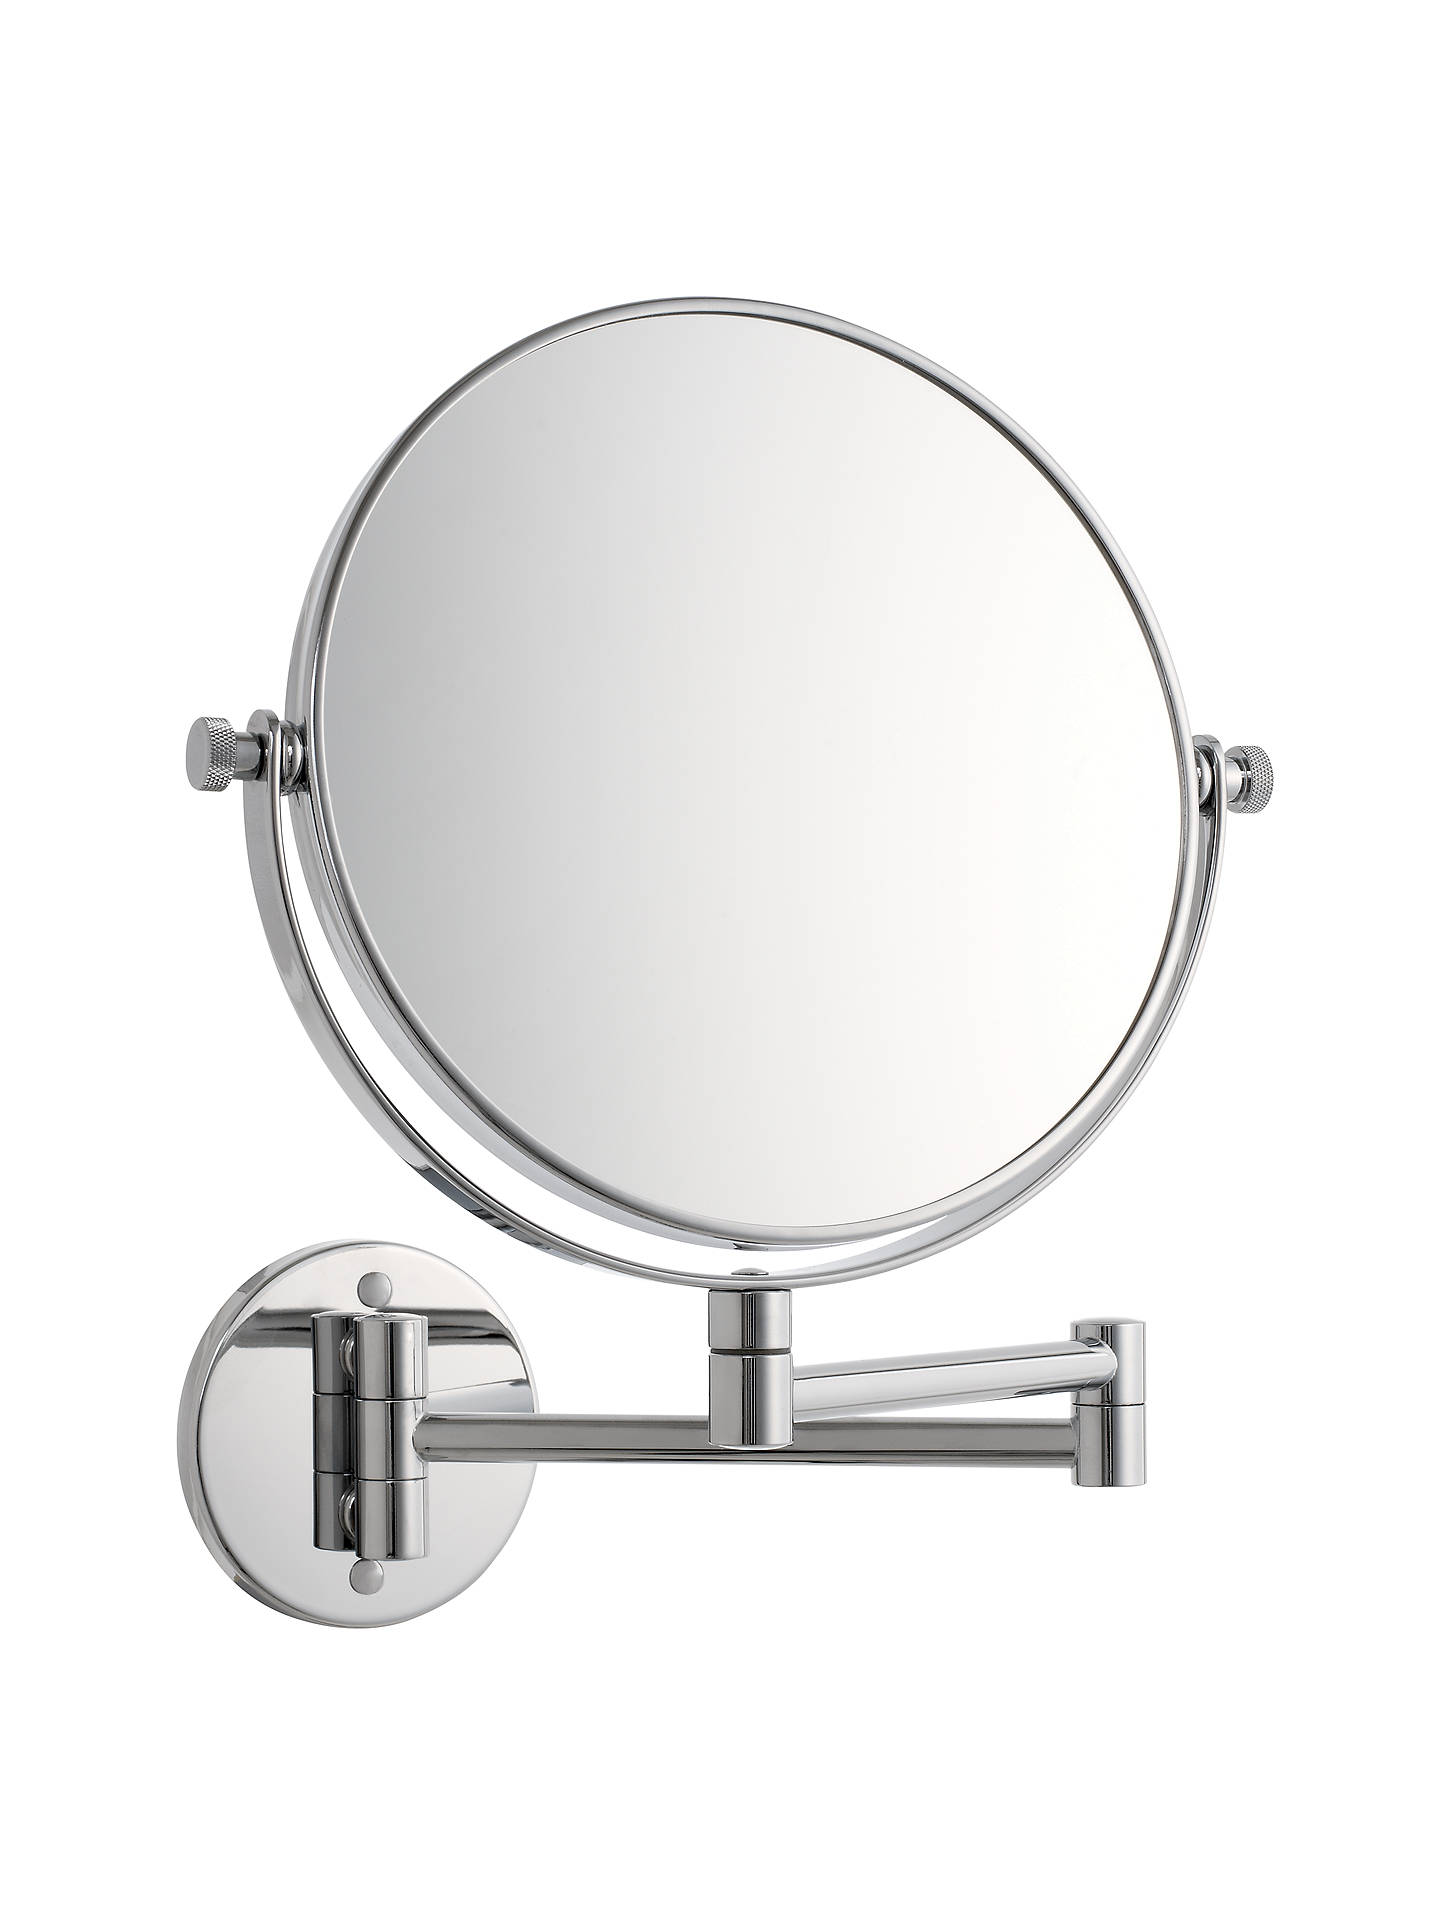 BuyJohn Lewis & Partners Chrome Extending Magnifying Mirror Online at johnlewis.com